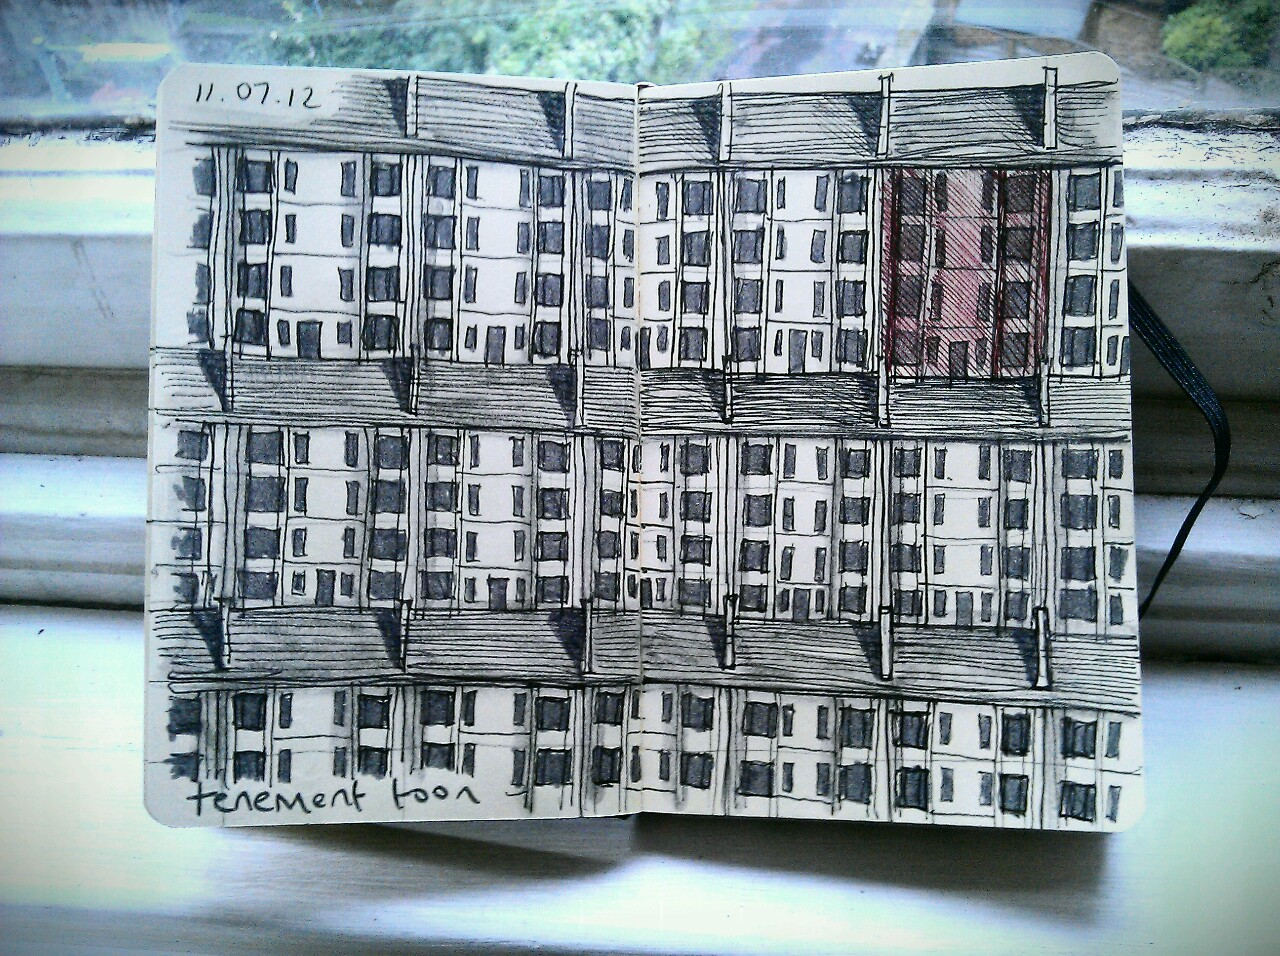 365 drawings later … day 162 … tenement toon